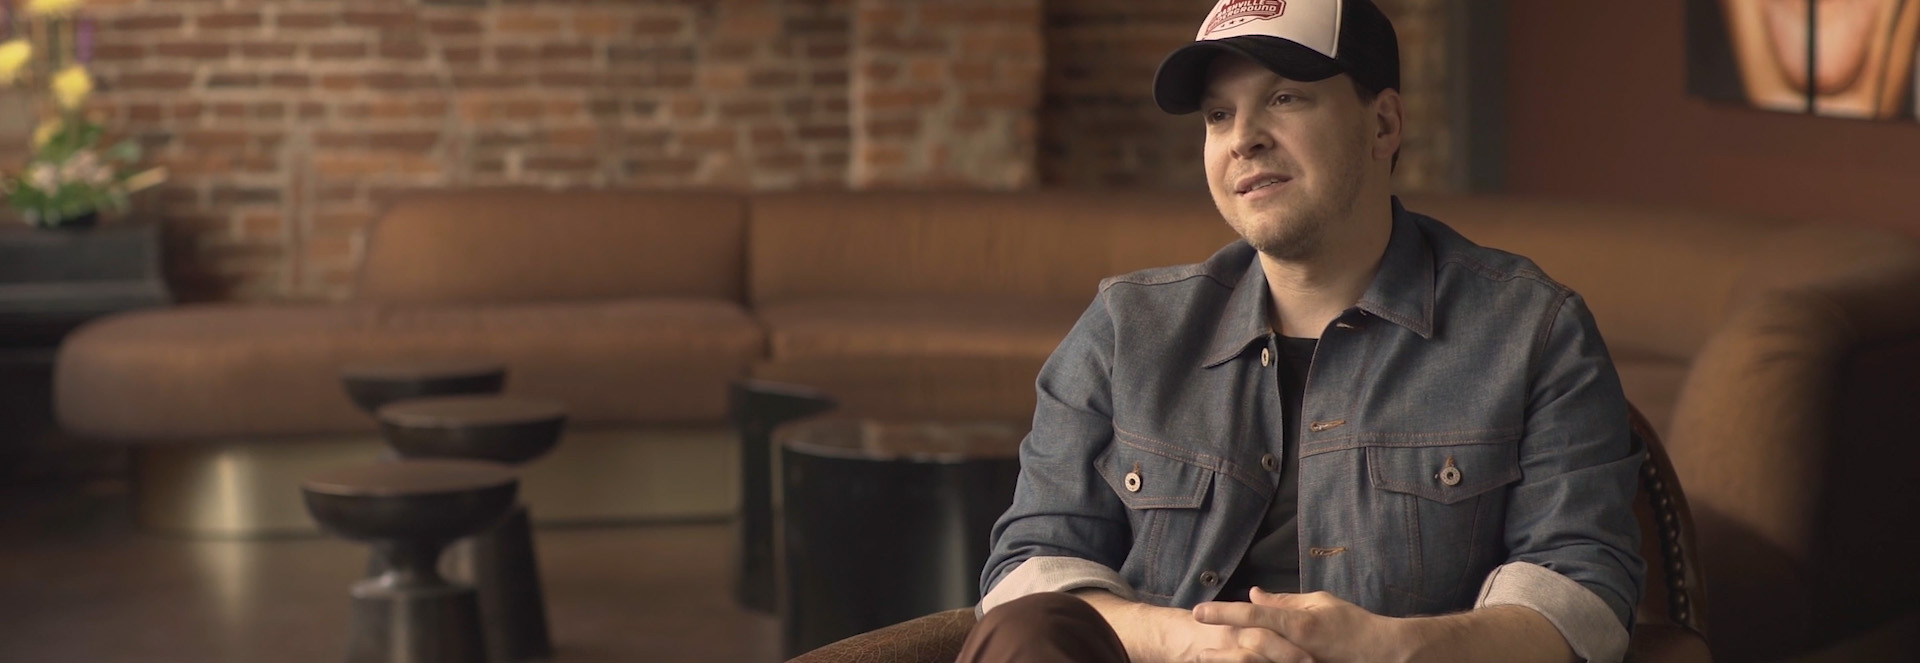 Singer, songwriter Gavin DeGraw knows firsthand how devastating pancreatic cancer is for patients and their families, having recently lost his mom to the disease. He is turning his grief into action by encouraging people to participate in a Lustgarten Foundation Walk. Click here to find a walk near you.